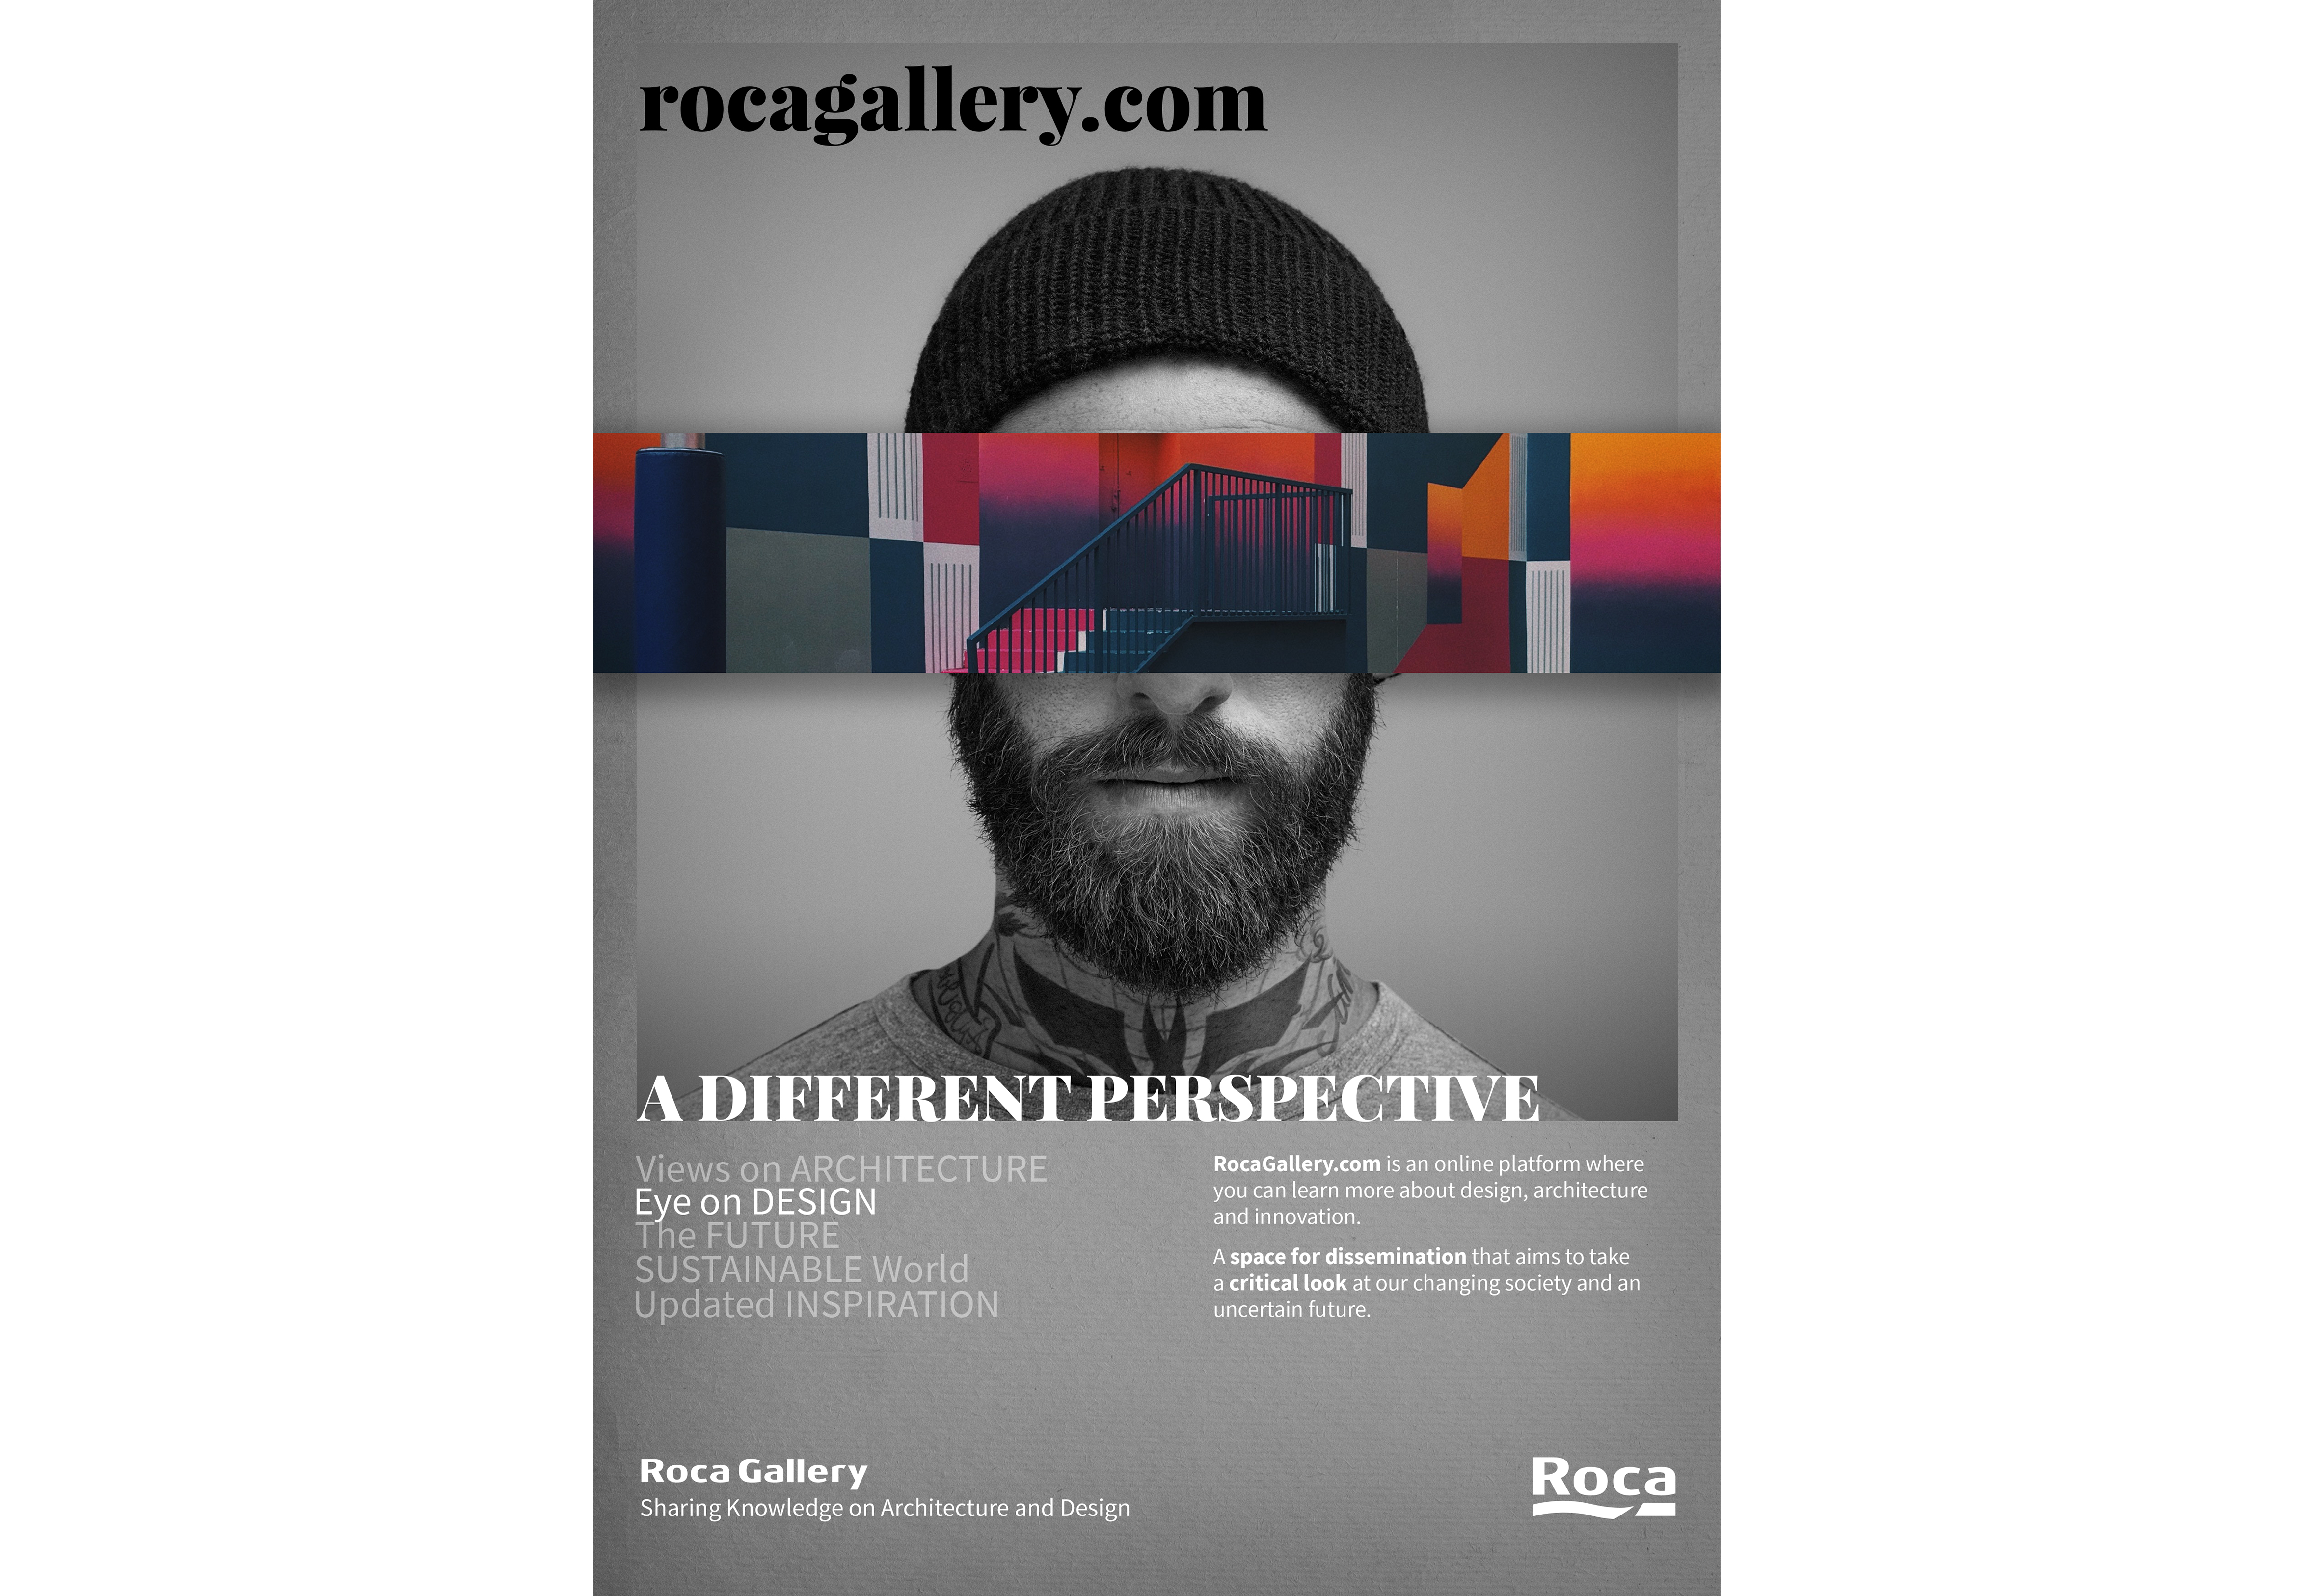 Roca Gallery | A different perspective